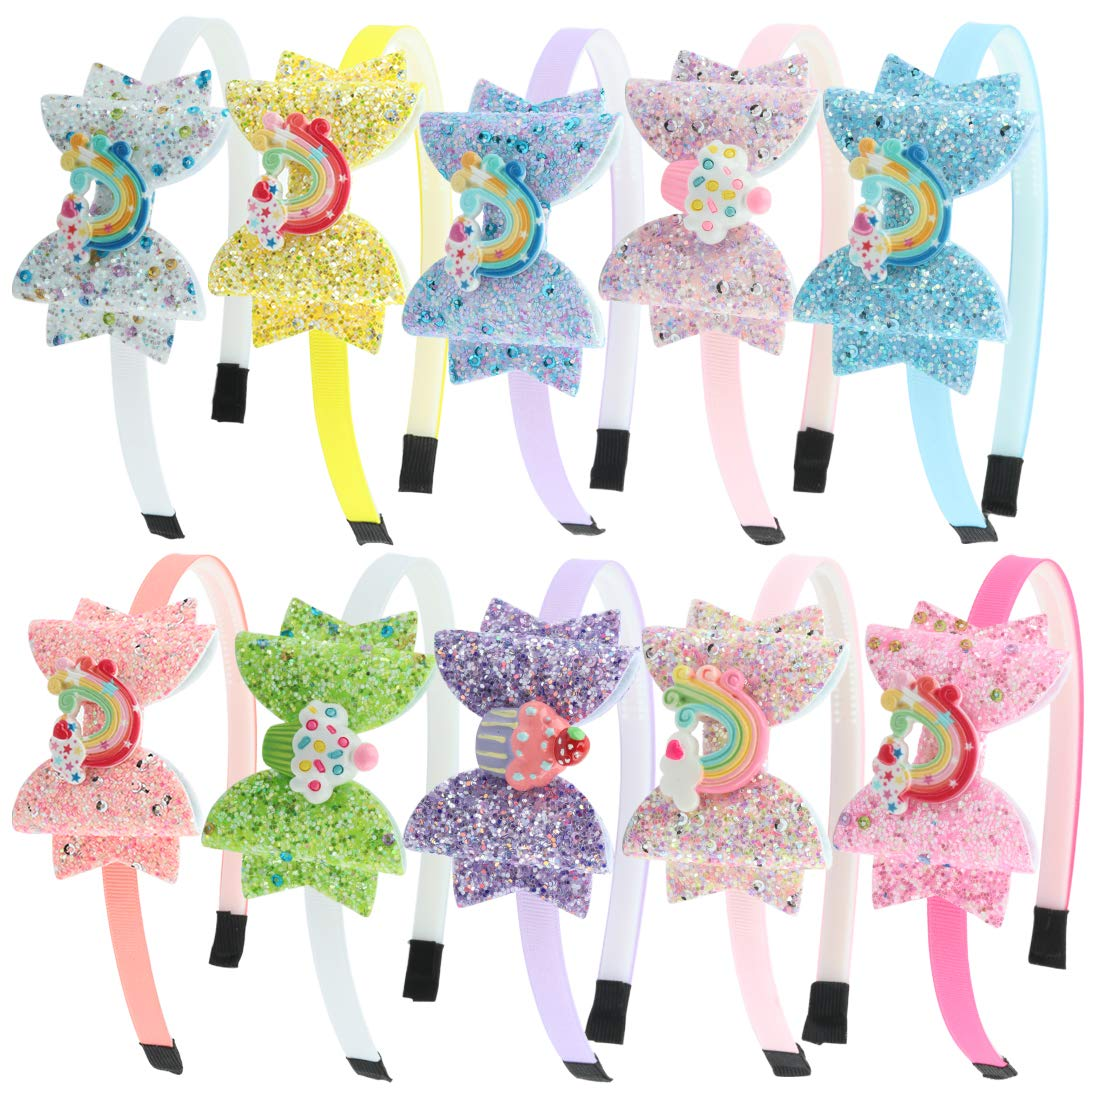 Glitter Bows Girls Hairbands Sequin Hair Bows Headband with Rainbow Ice Cream Hair Band for Teens Toddler Kids Children Accessories Pack of 10